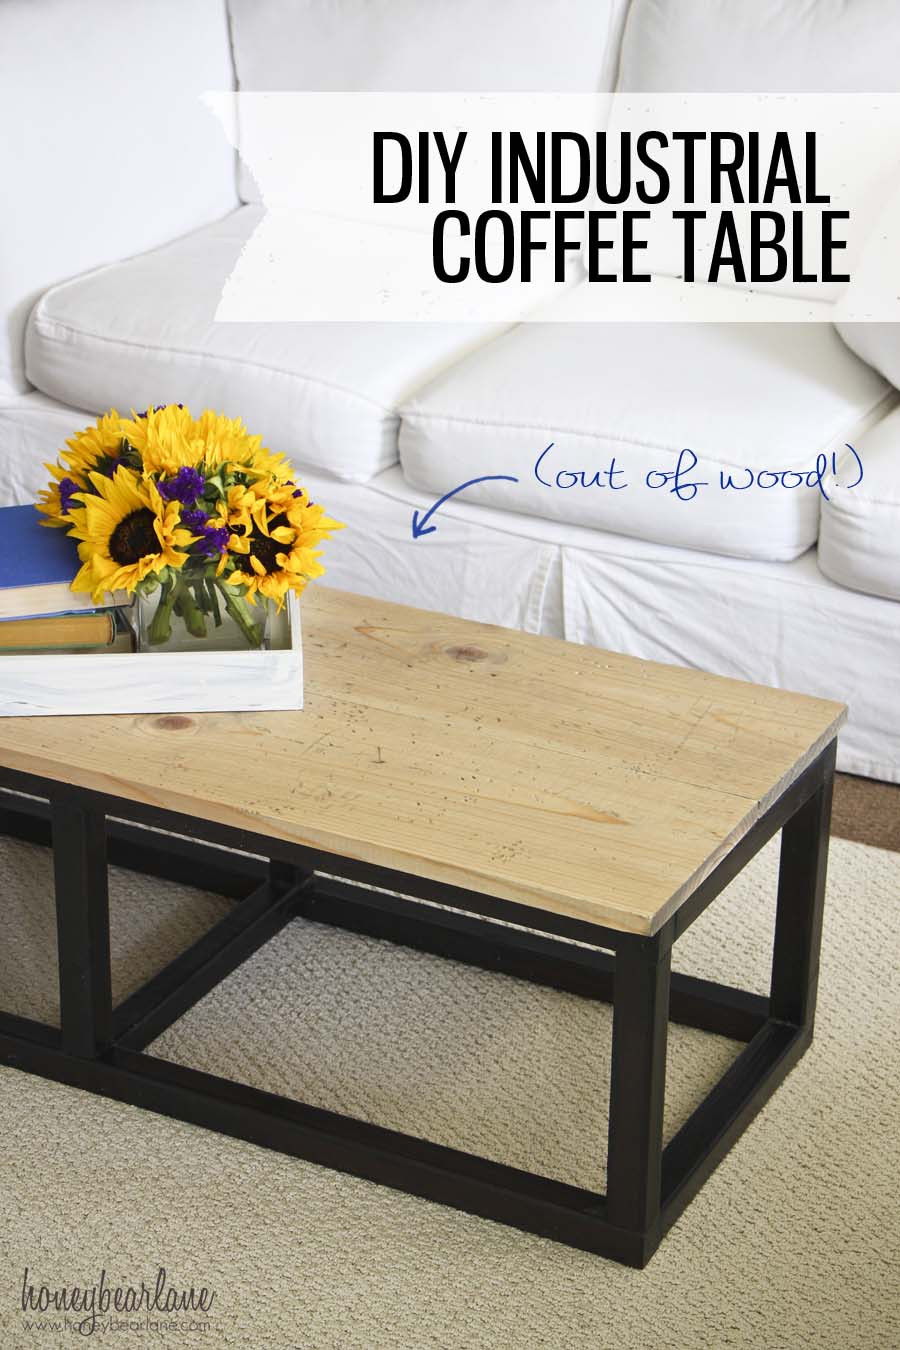 Best ideas about DIY Industrial Coffee Table . Save or Pin DIY Industrial Coffee Table HoneyBear Lane Now.